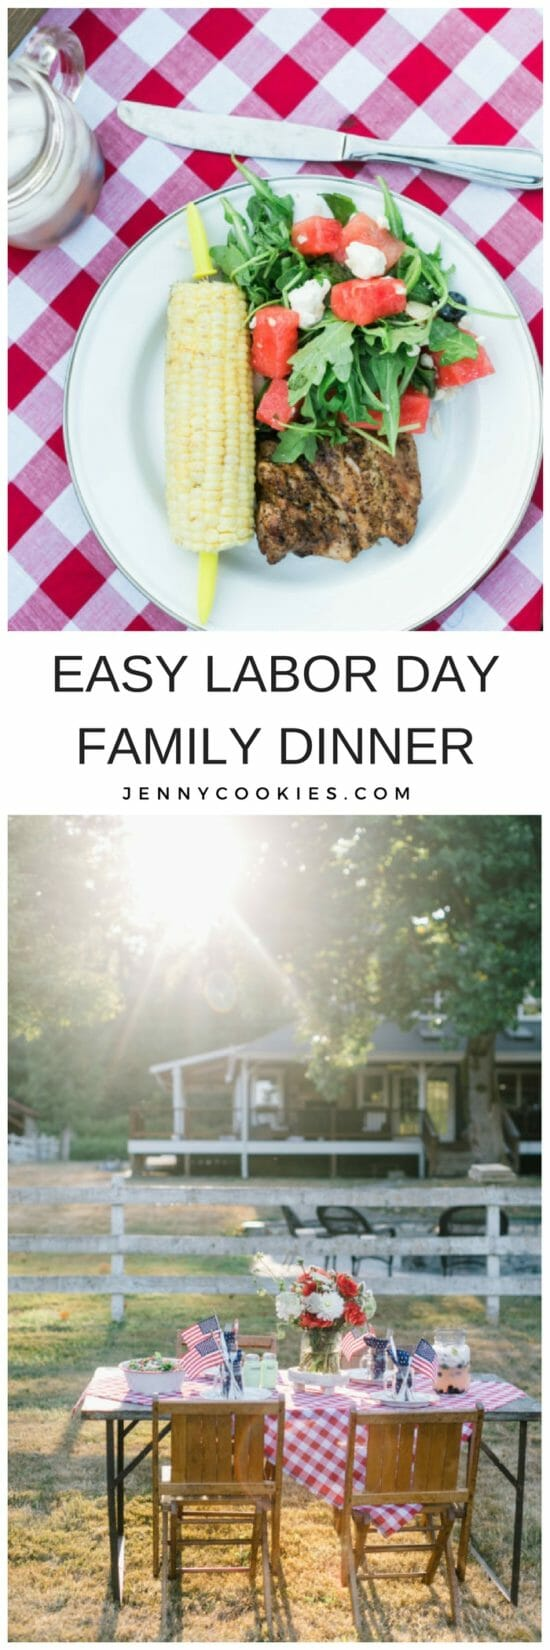 Farewell to the Farmhouse | outdoor farmhouse dinner | Labor Day dinner ideas | Labor Day tables cape | outdoor party decor | hosting an outdoor dinner party | outdoor dinner party tips || JennyCookies.com